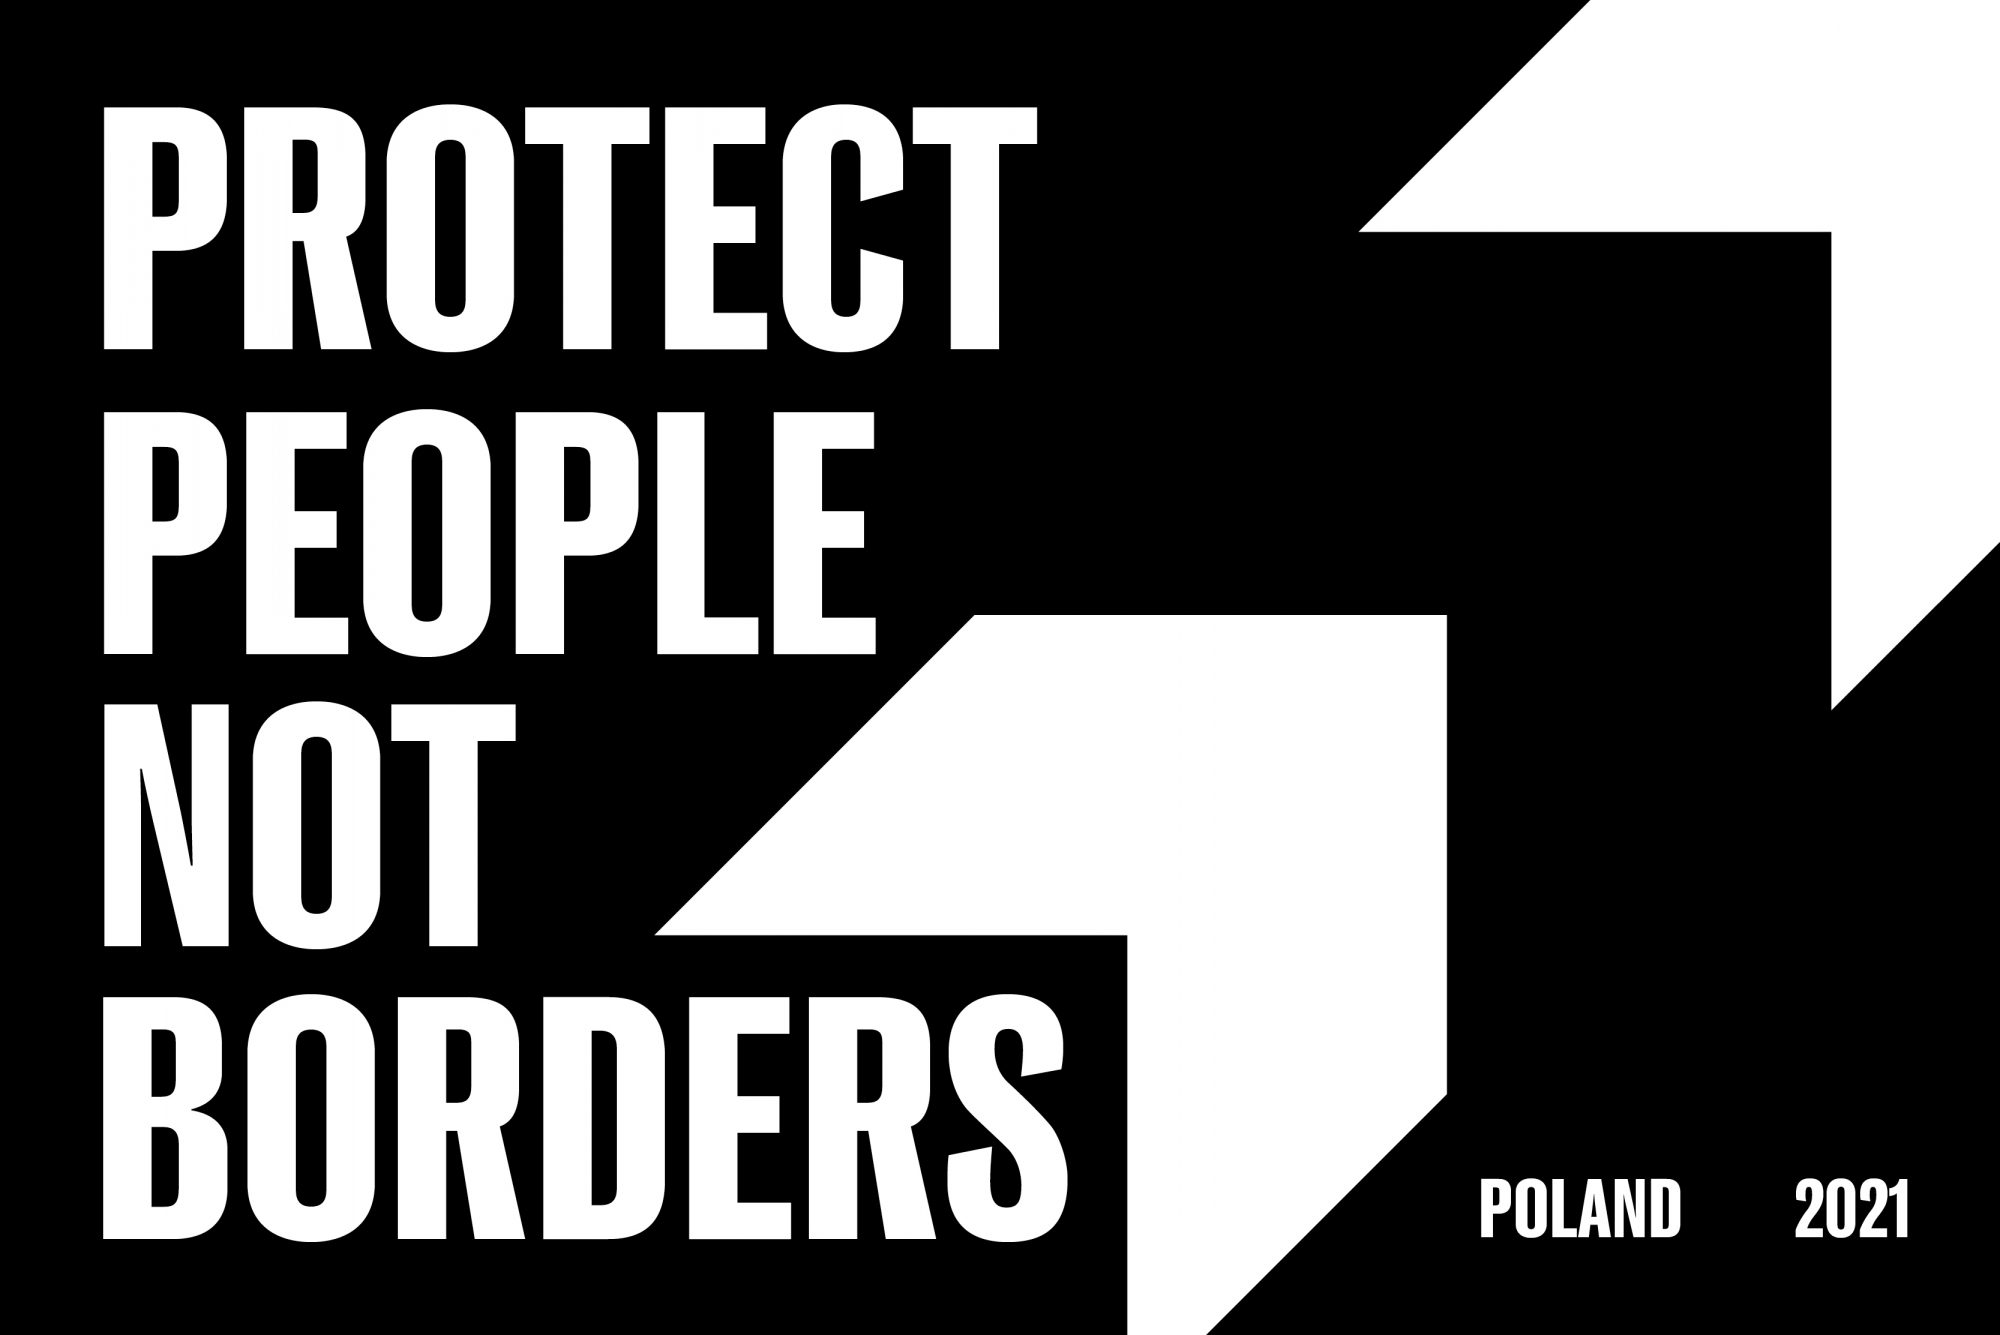 Protect people not borders